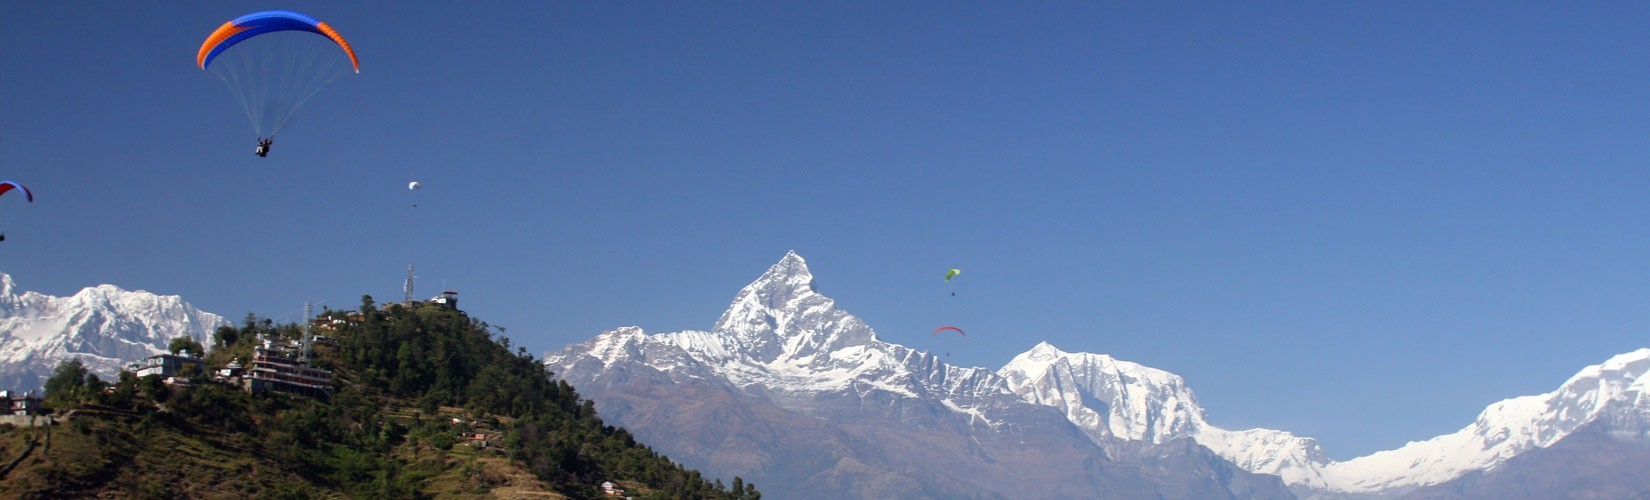 Paragliding in Pokhara -1 day